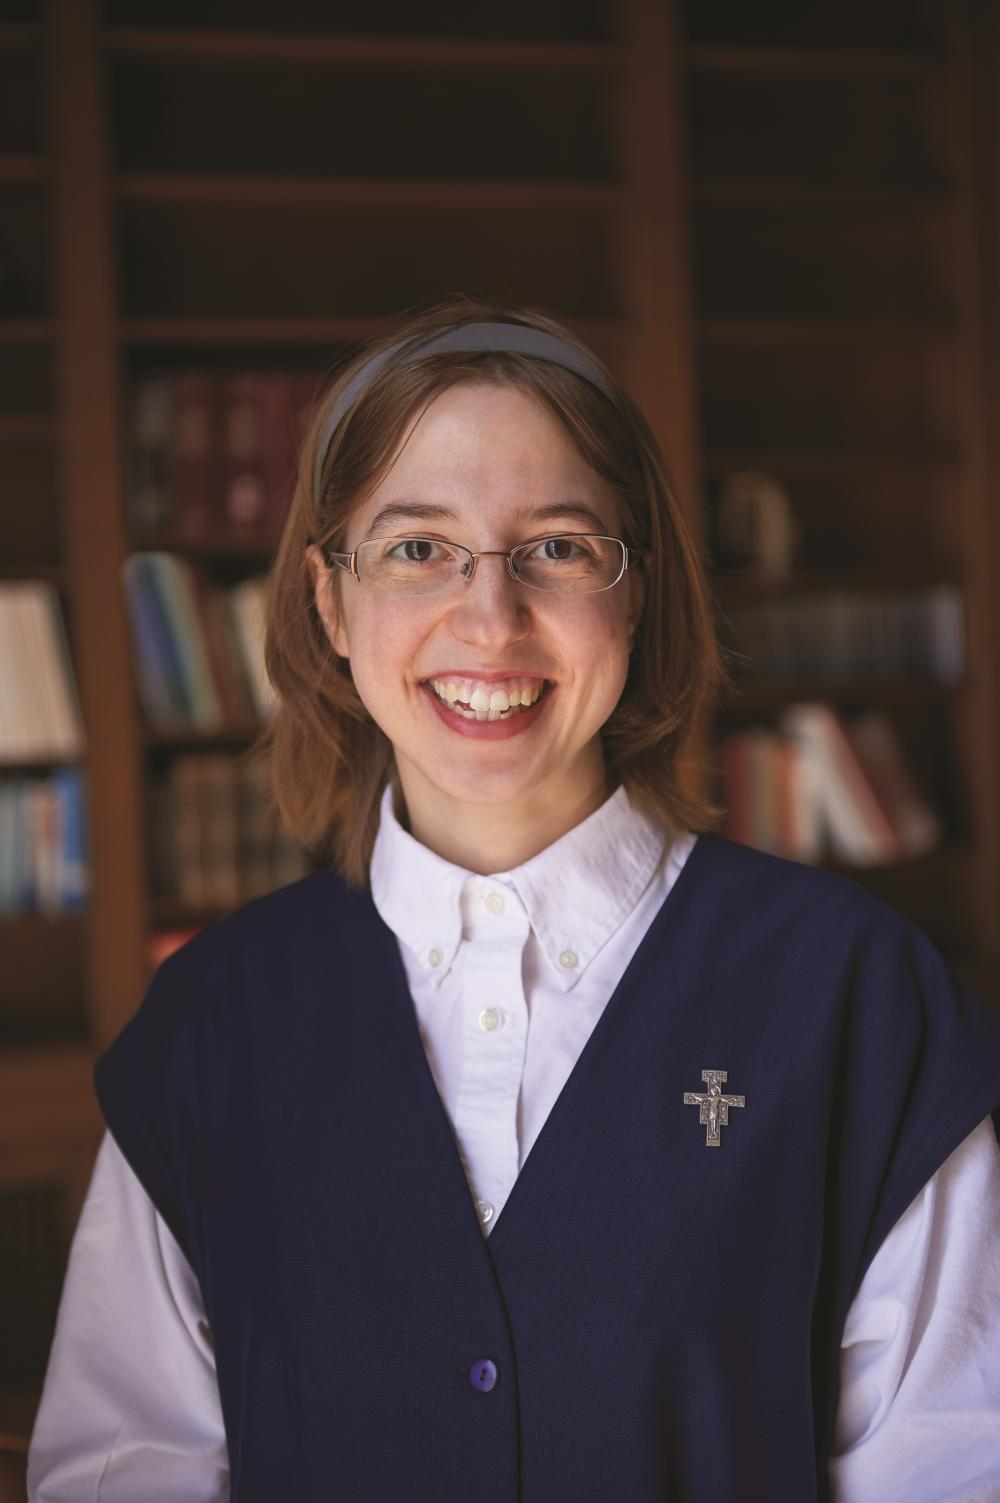 One Day in the convent, Celeste's life as a postulant